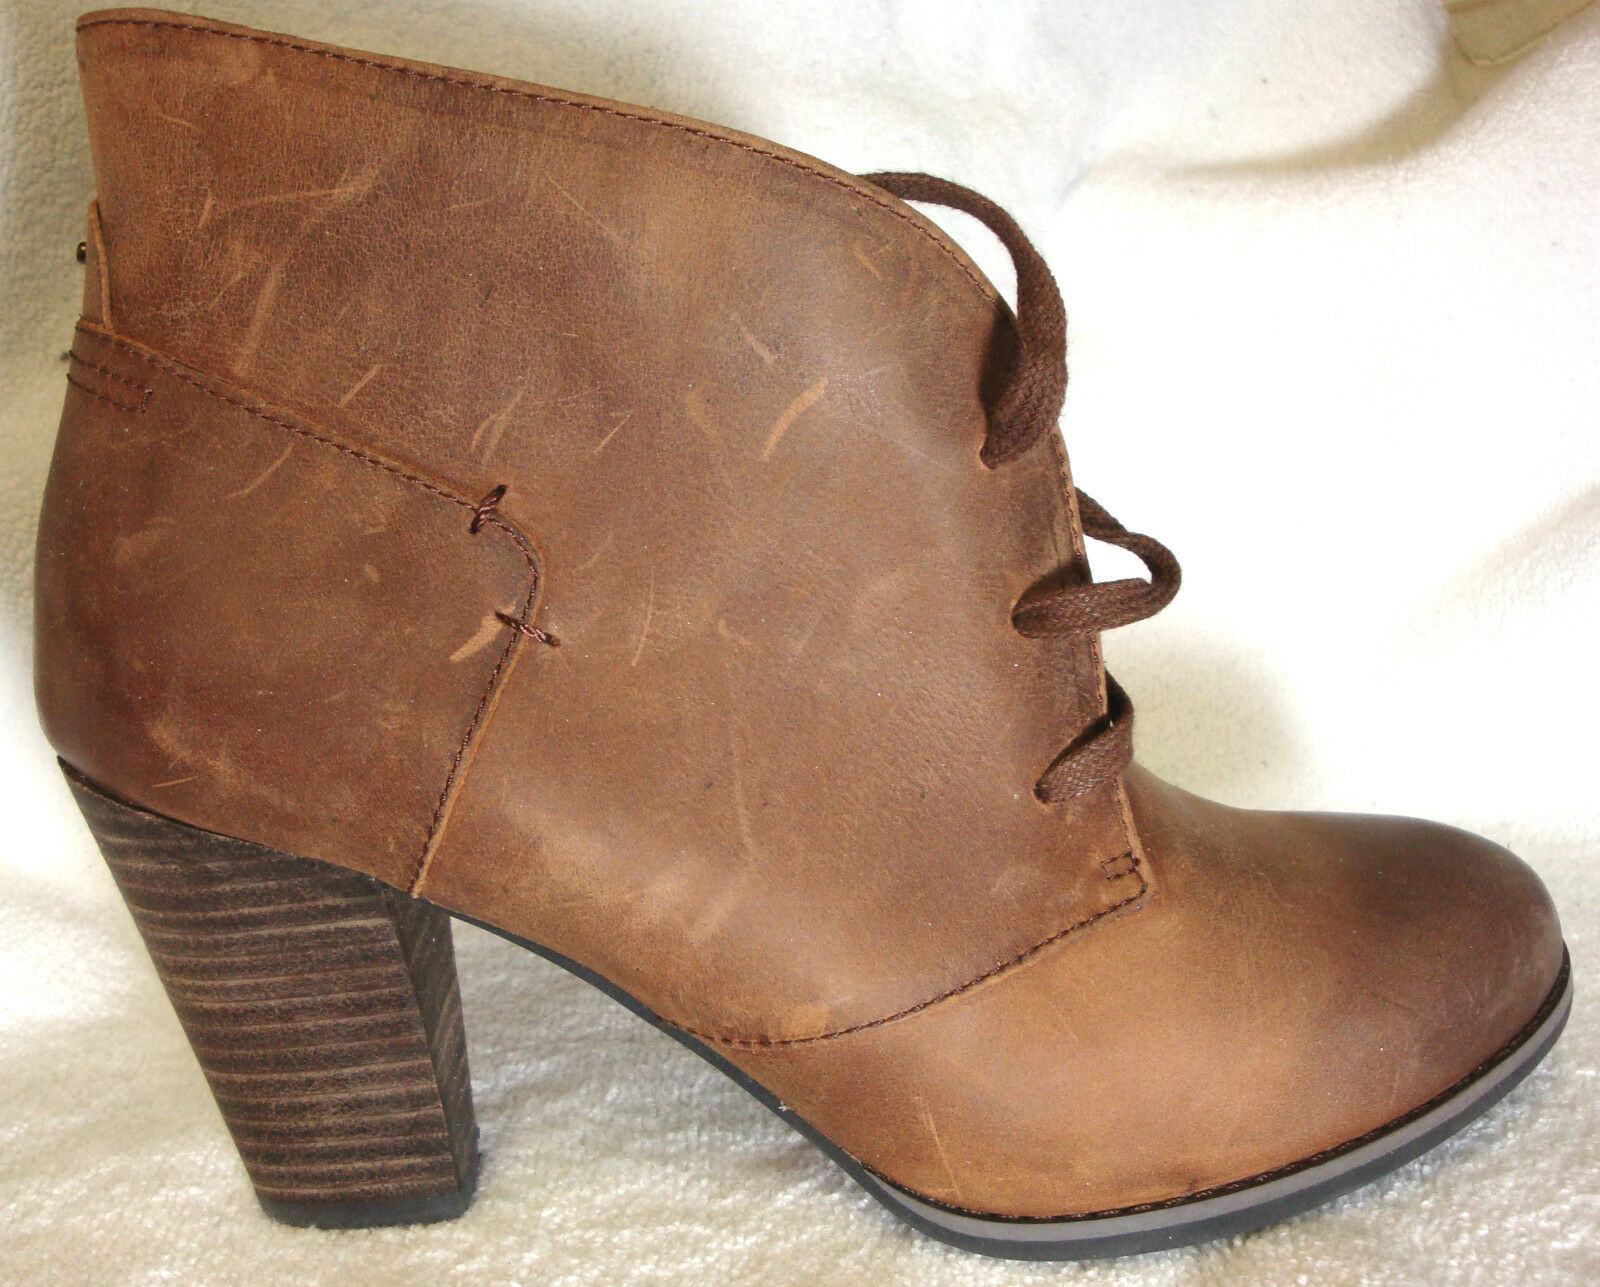 Indigo By Clarks solide en cuir Marron Cheville Lacets Bottes Chaussons Talons 9 m NEUF